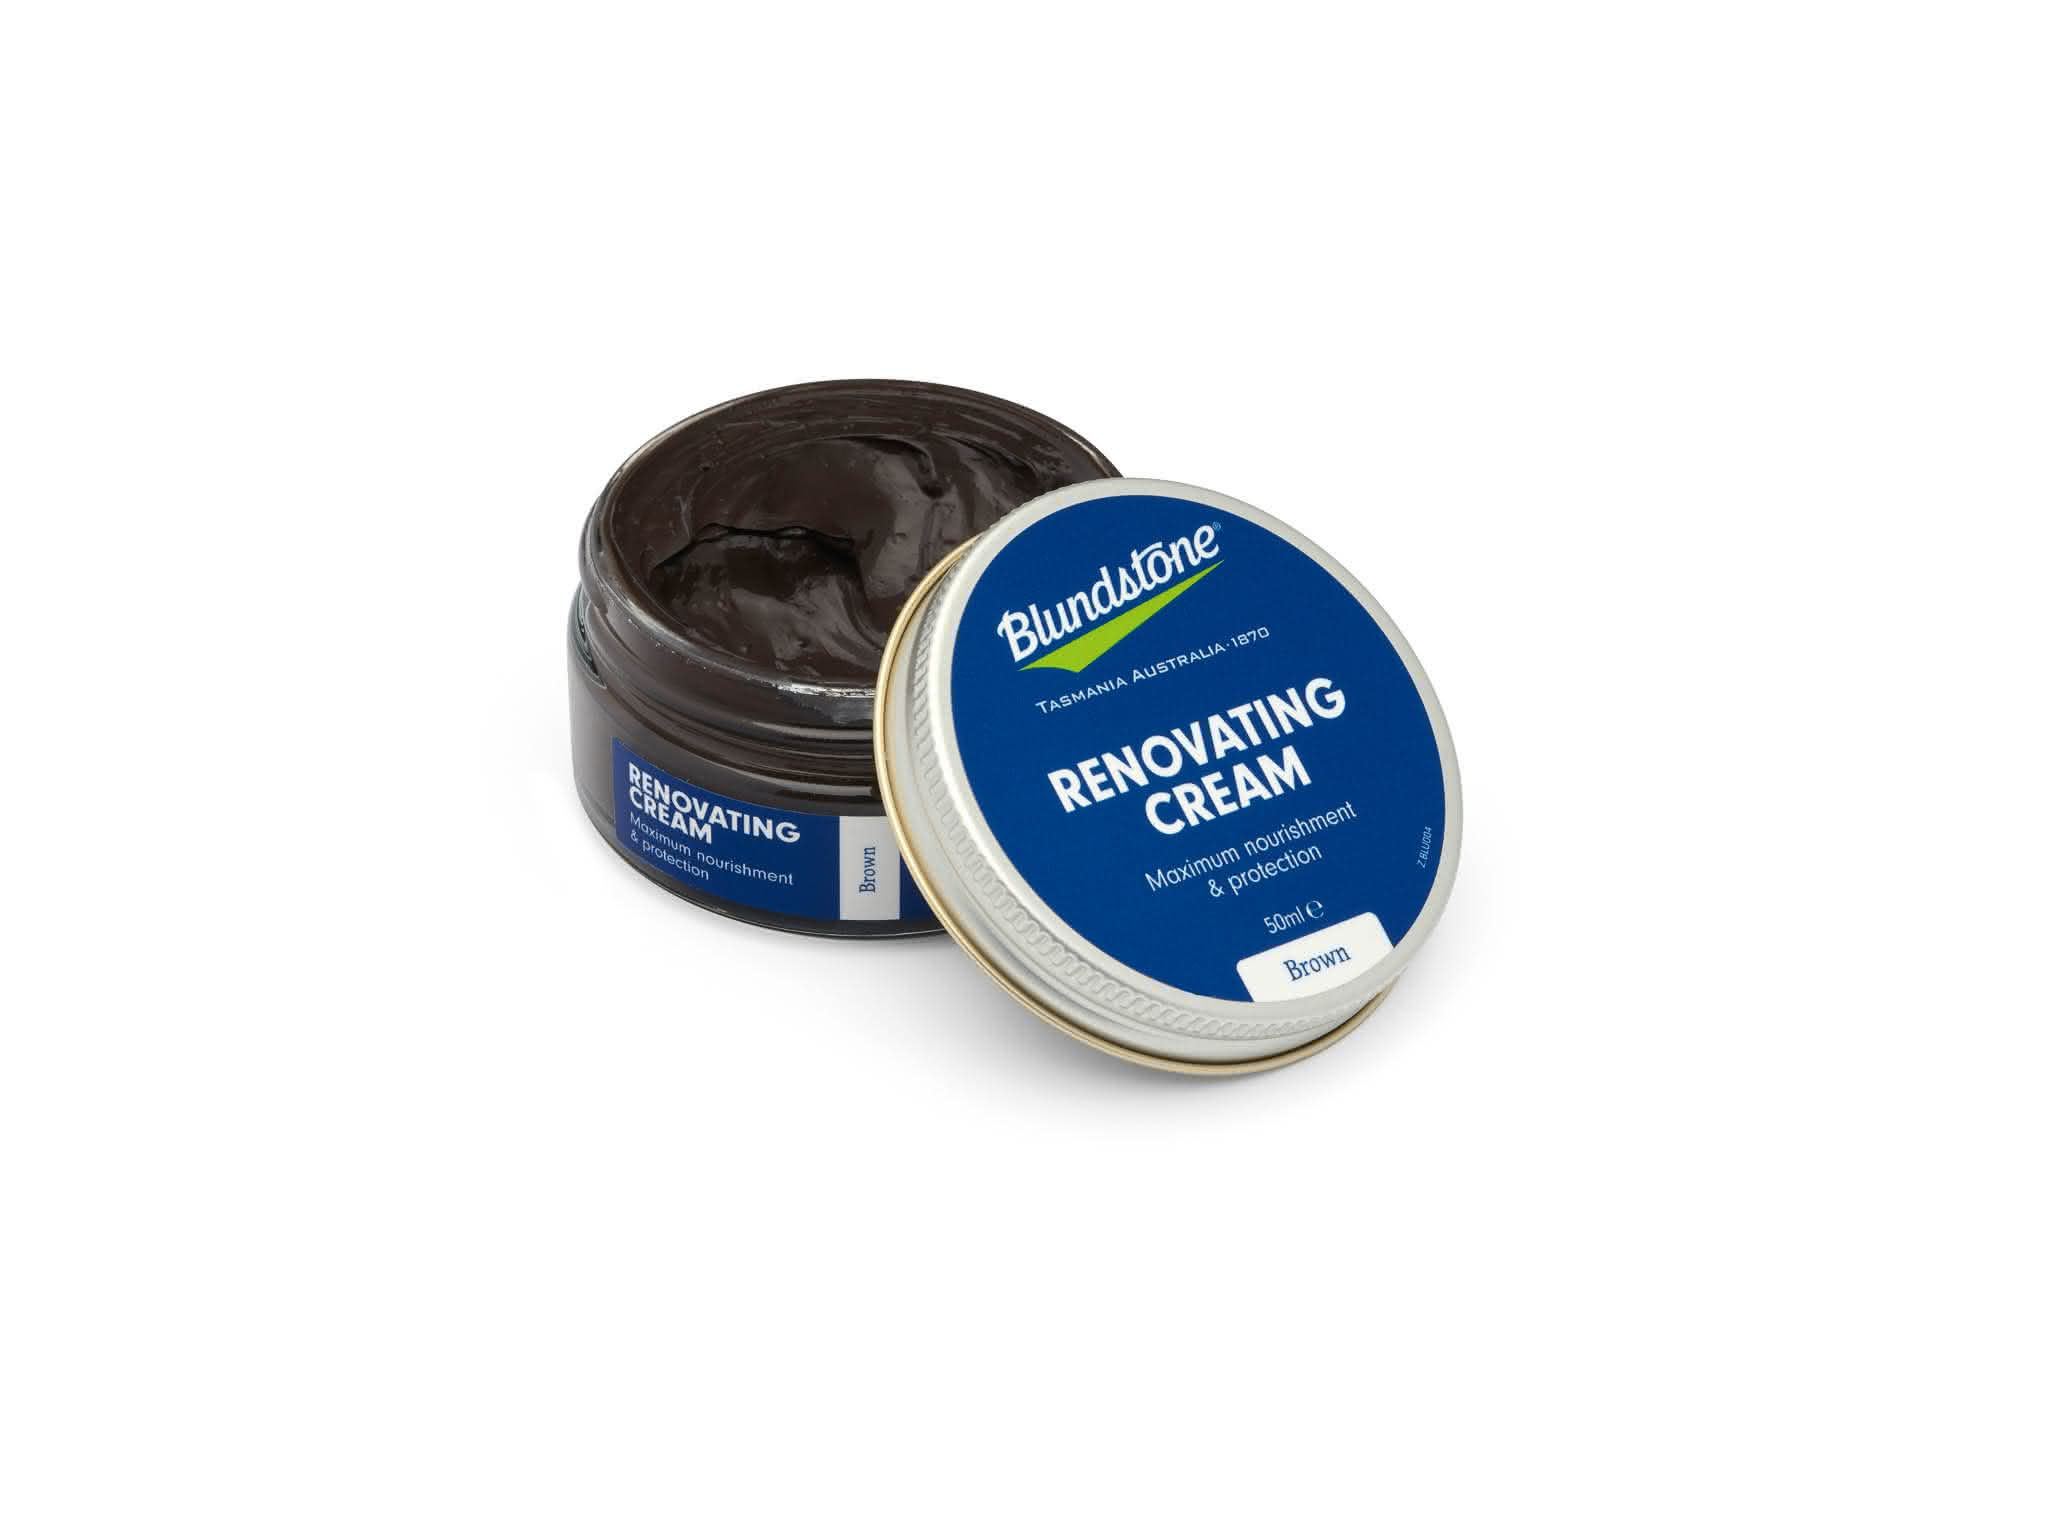 Blundstone Boot Polish - braun - 50ml